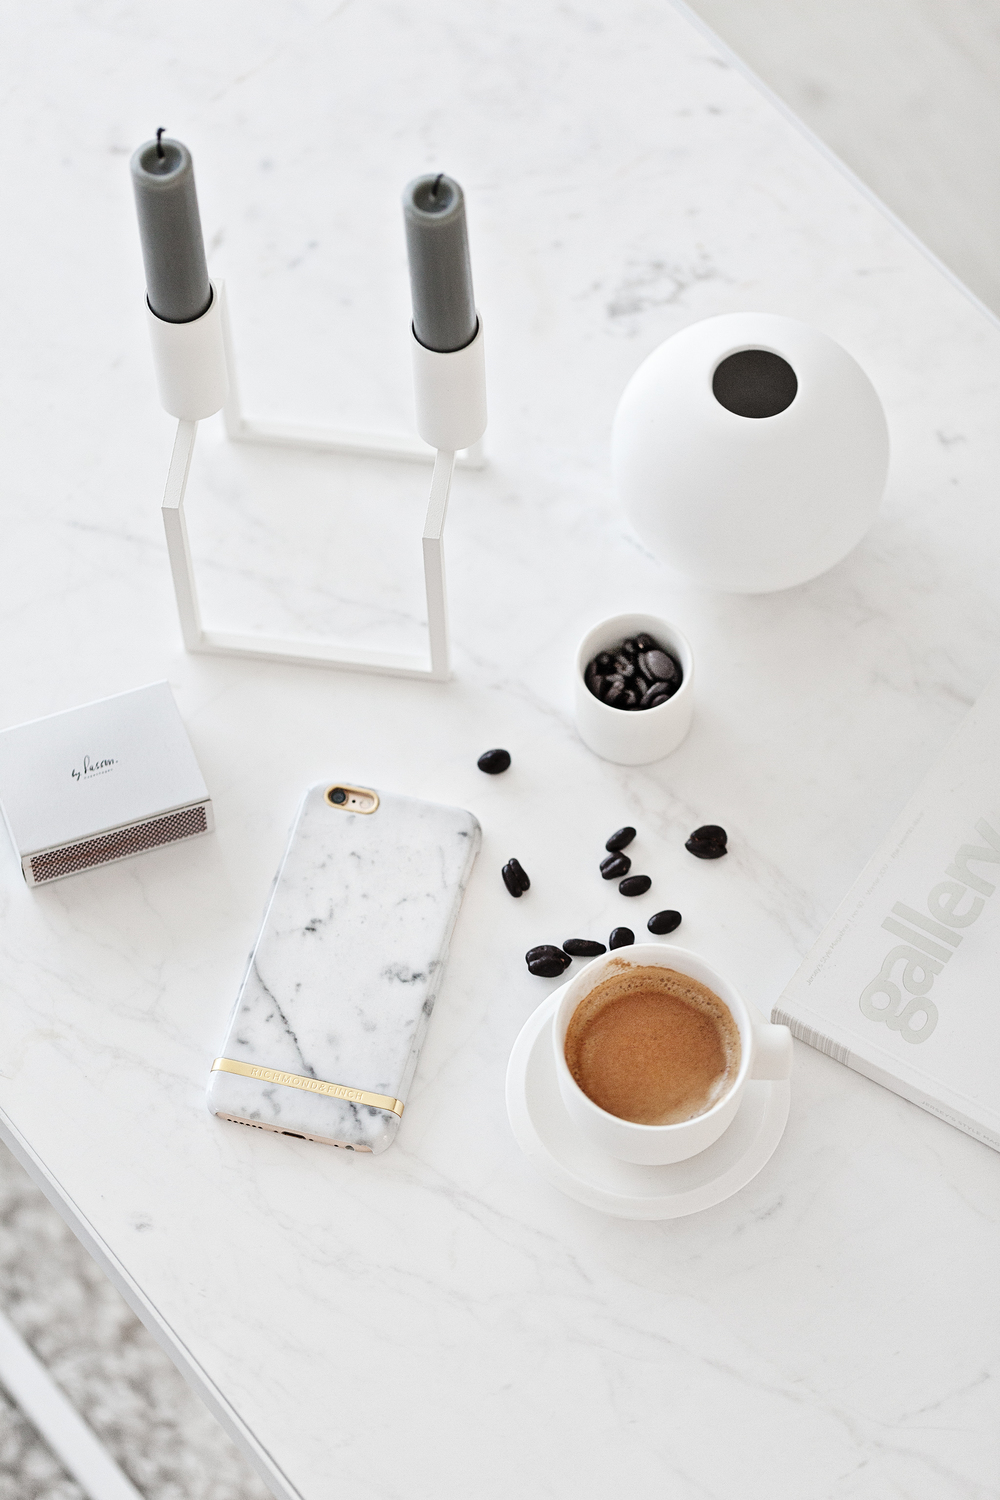 Carrara Marble White iPhone Case from  Richmond & Finch  | Catherine Lovatt White Ceramic Cup from  Serax Belgium  | Line Candle Holder from  By Lassen  | White Ceramic Vase from  Cooee Design